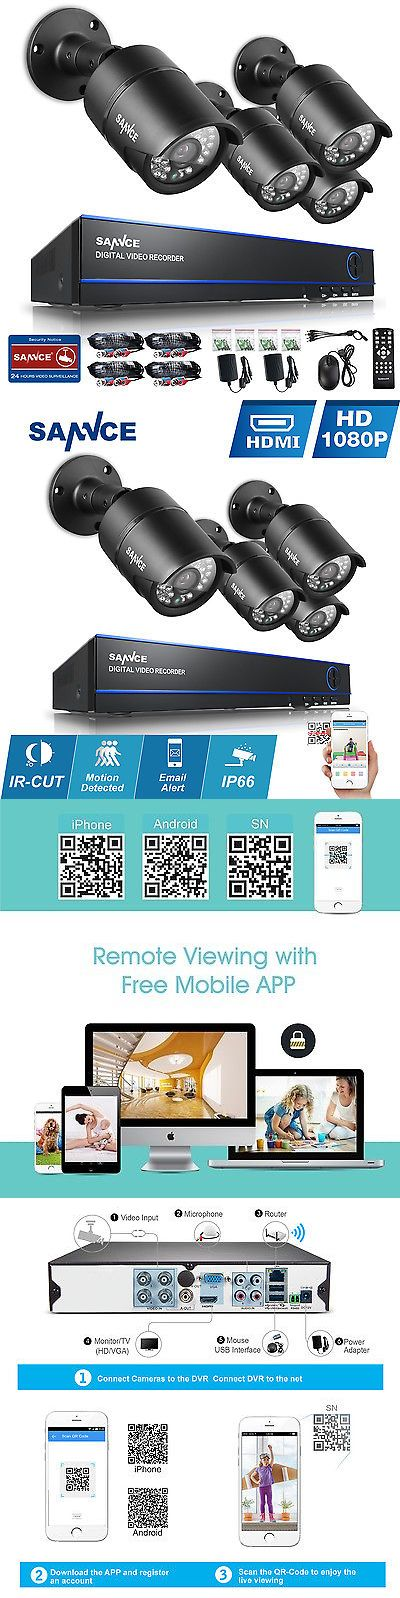 Surveillance Security Systems: Sannce 4Ch Hd 1080P Hdmi Dvr Outdoor 2Mp Ir Cctv Home Security Camera System BUY IT NOW ONLY: $139.99